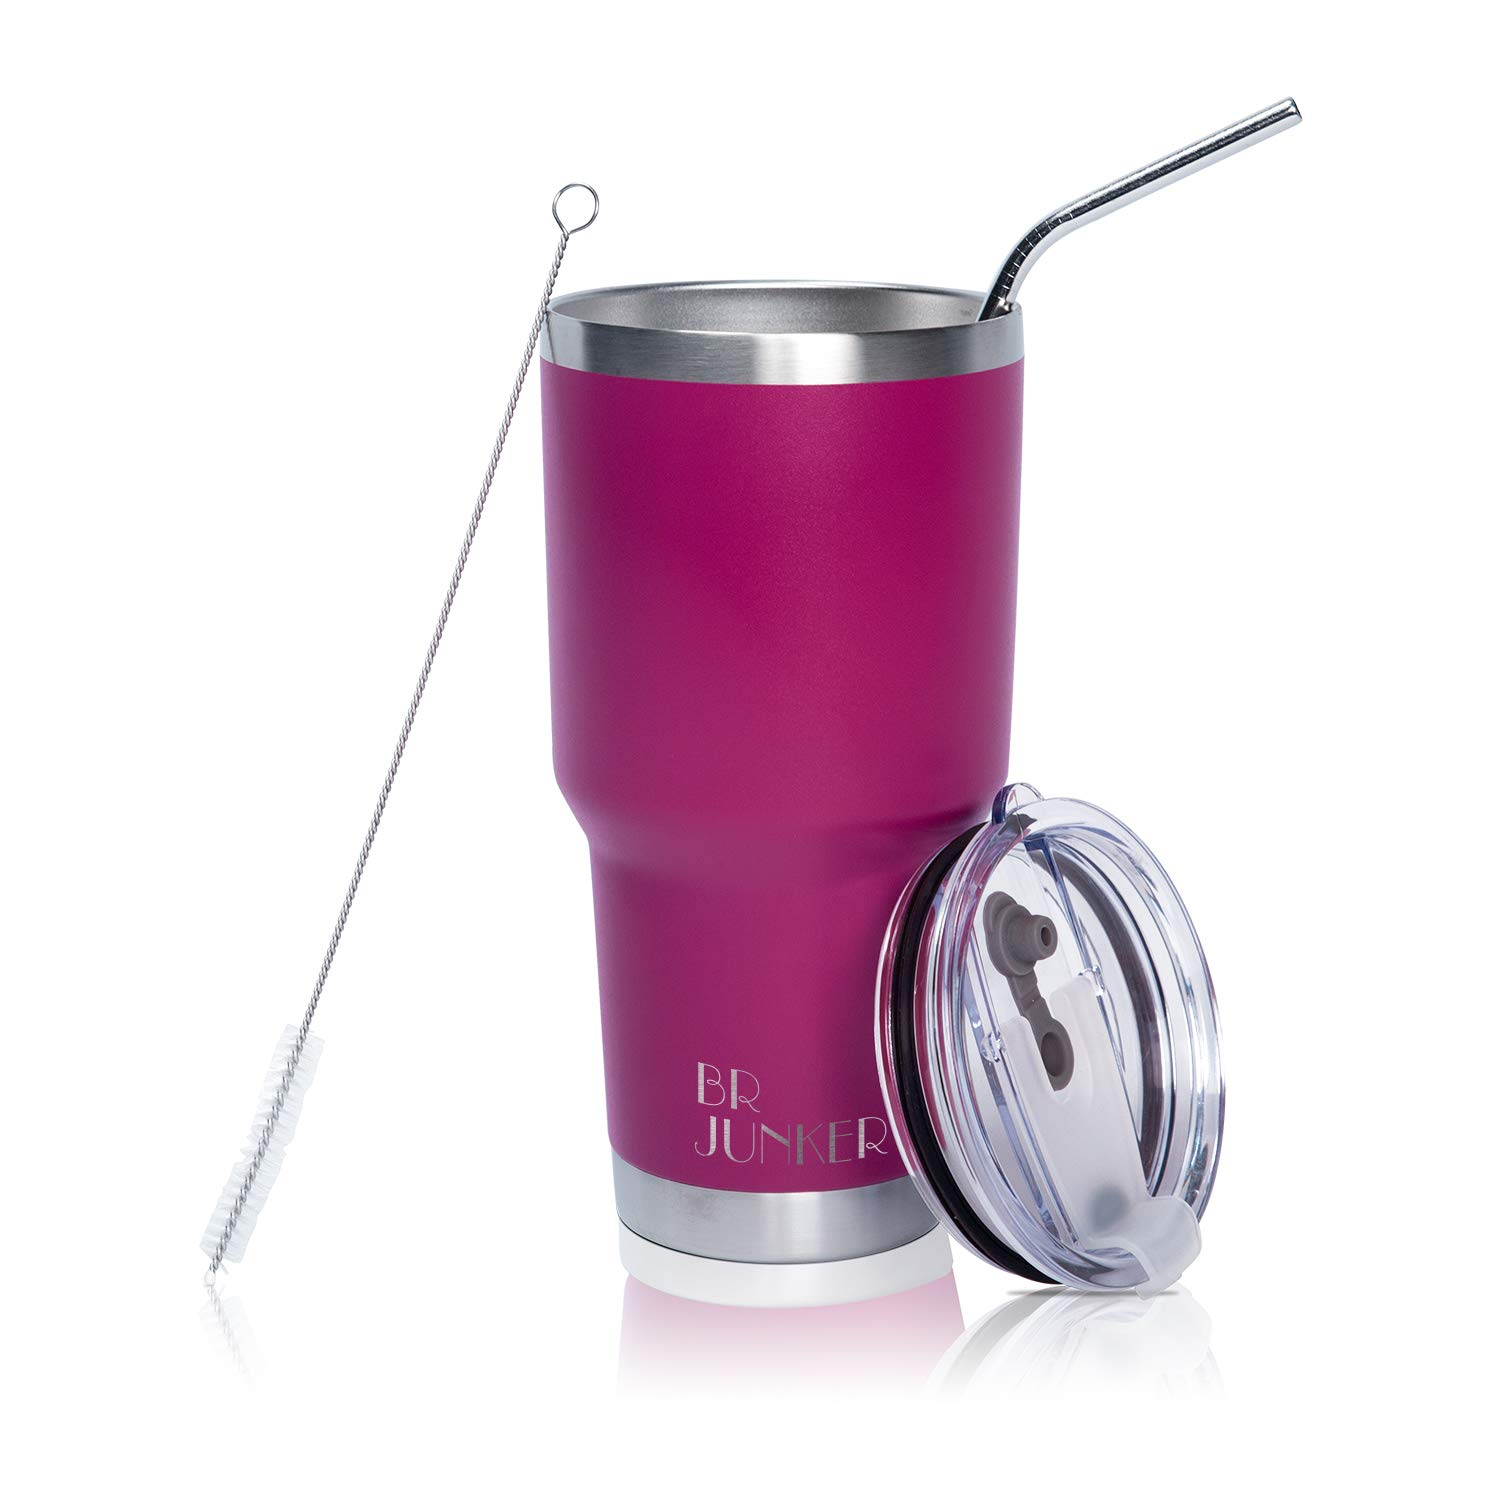 30 oz. Tumbler Double Wall Stainless Steel Vacuum Insulation Travel Mug with Crystal Clear Lid and Straw, Water Coffee Cup for Home,Office,School, Ice Drink, Hot Beverage,Fuchsia